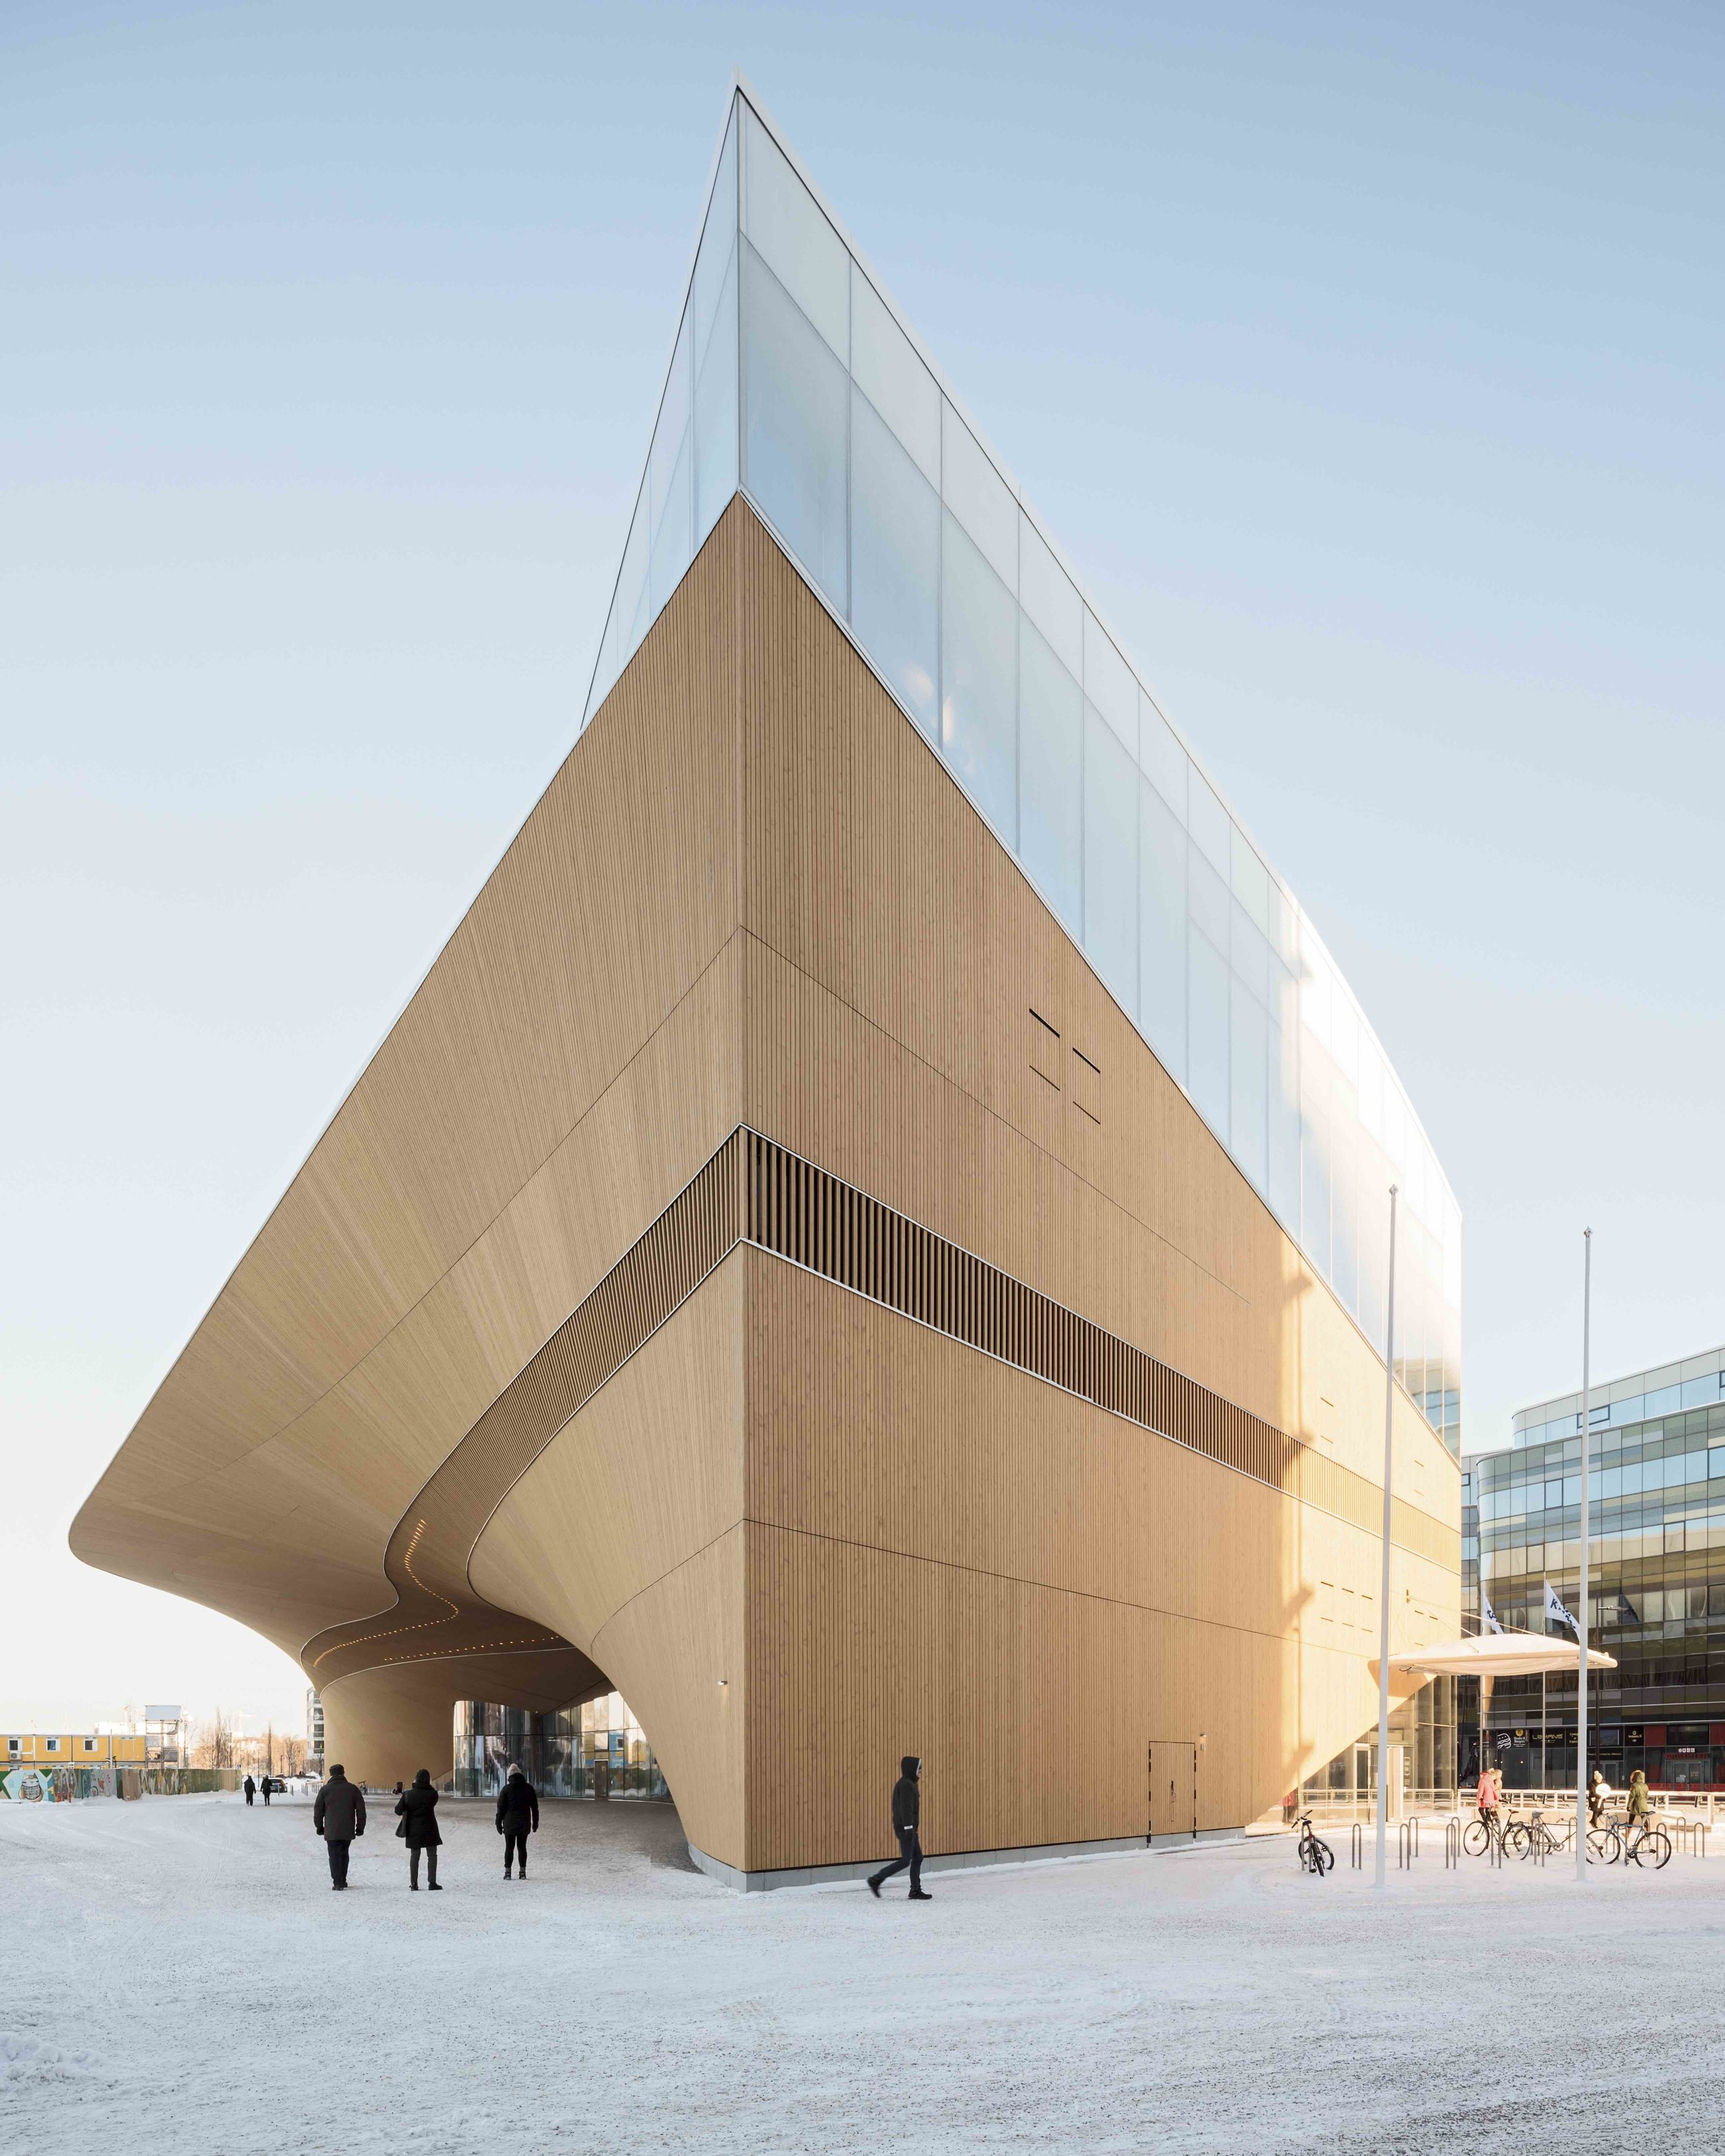 The library is accessed under a dramatic arch at street level. Photo by Tuomas Uusheimo